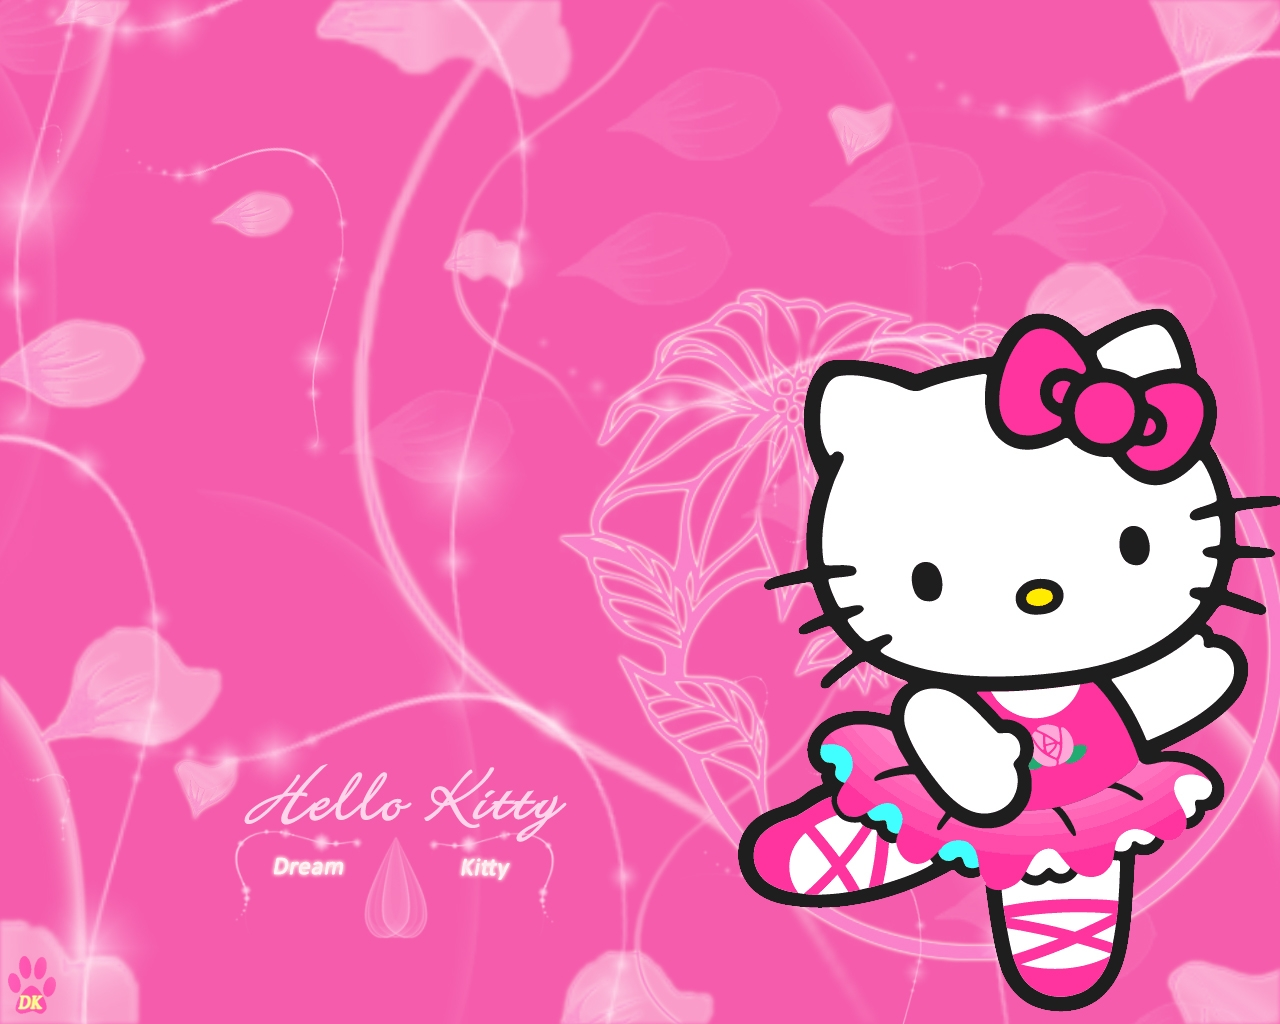 Hello kitty online images hello kitty hd wallpaper and background photos 35566828 - Hello kitty image ...